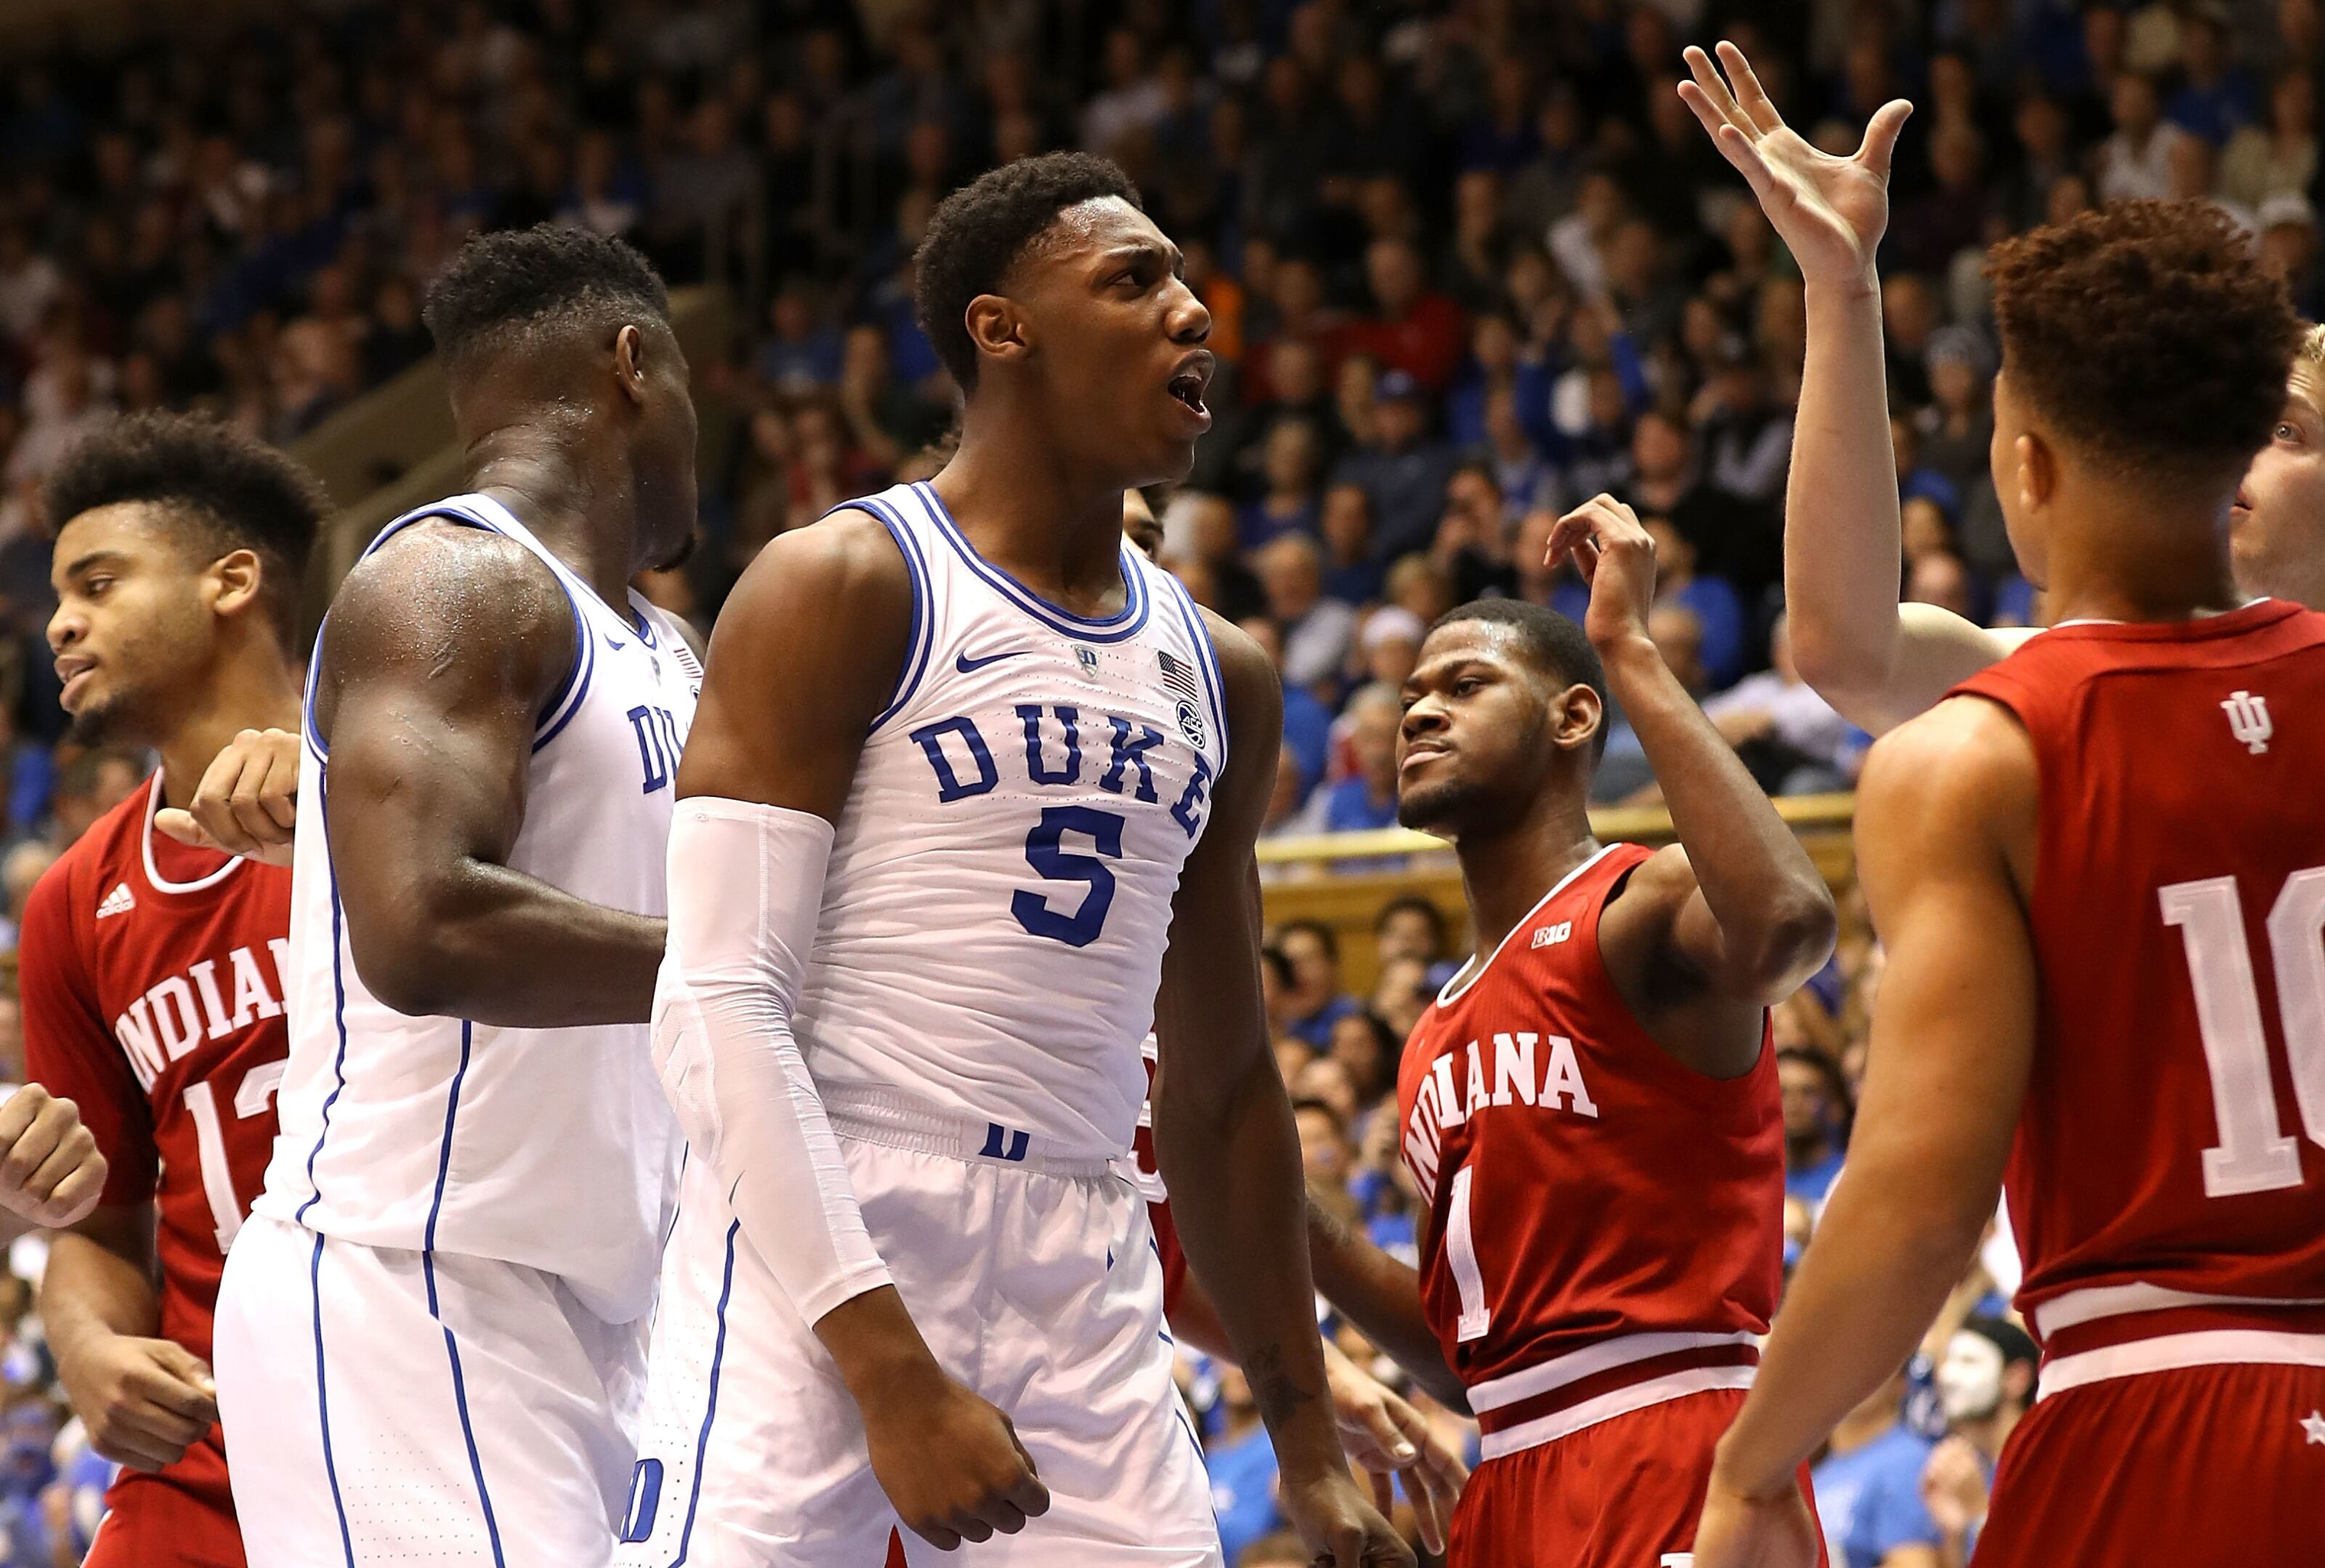 Duke Vs. Yale: 2018-19 College Basketball Game Preview, TV